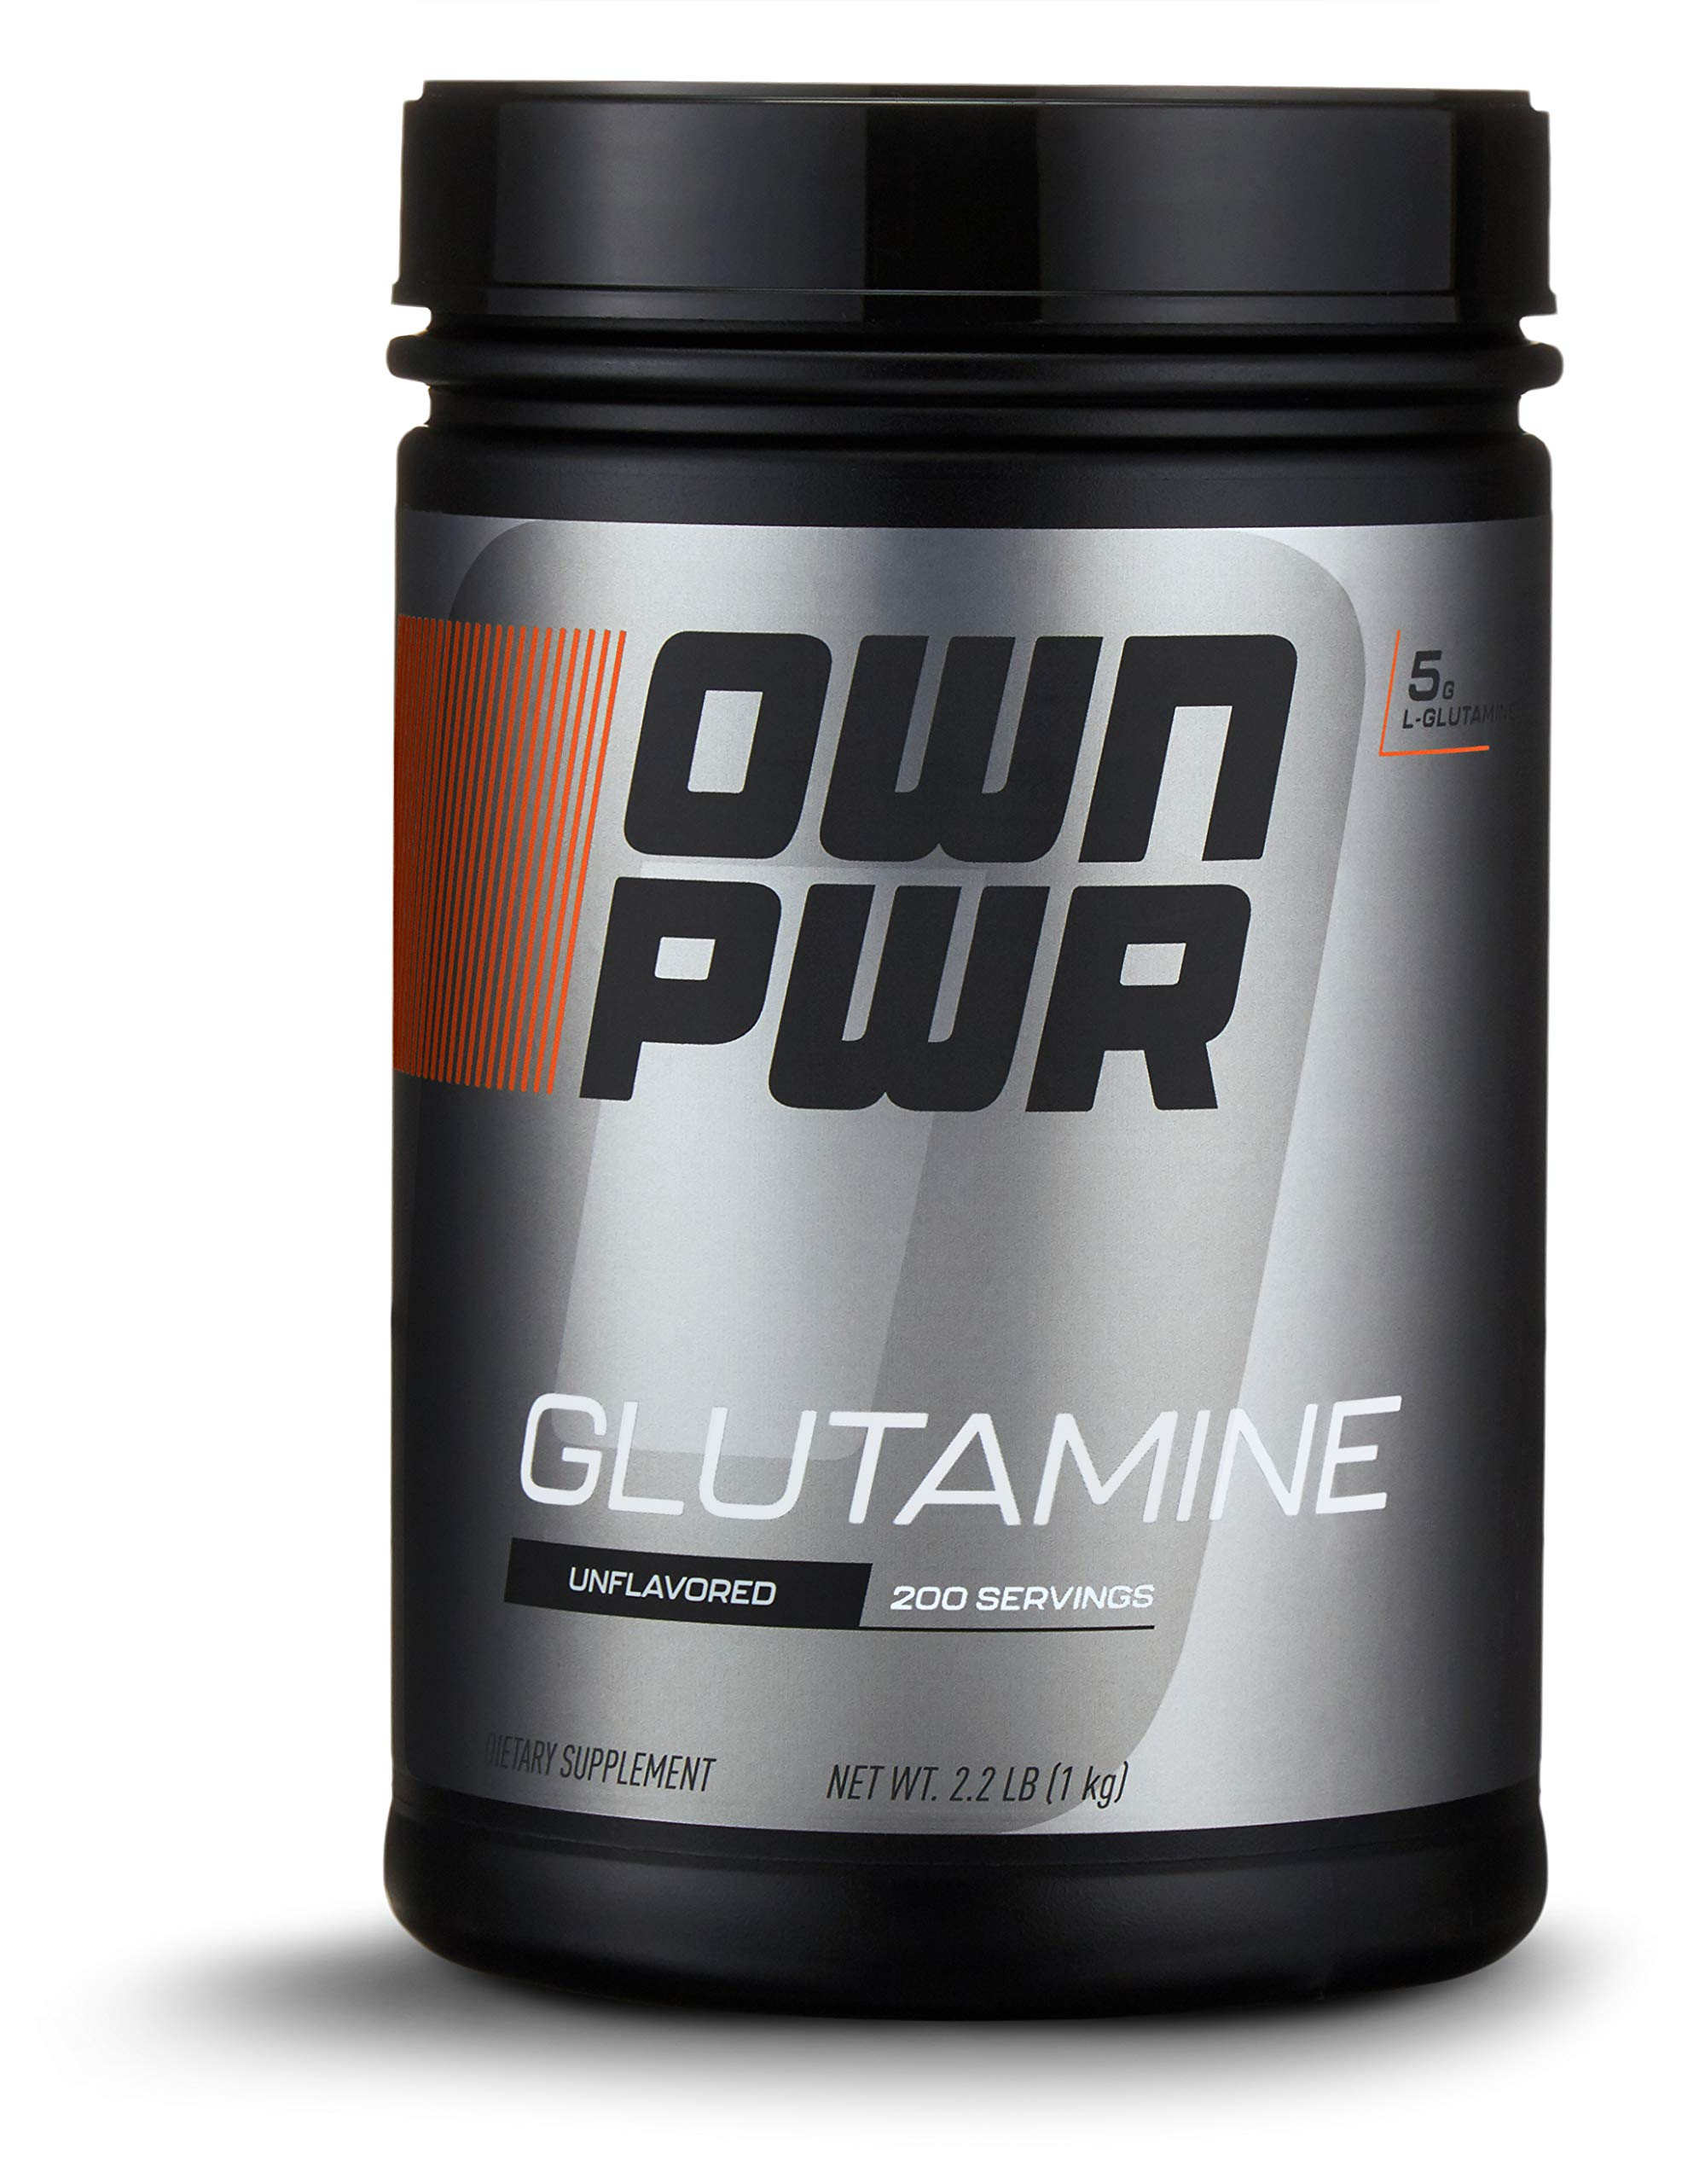 OWN PWR L-Glutamine Powder, 5G per Serving, Unflavored, 2.2 Pound Value Size (200 Servings) by OWN PWR